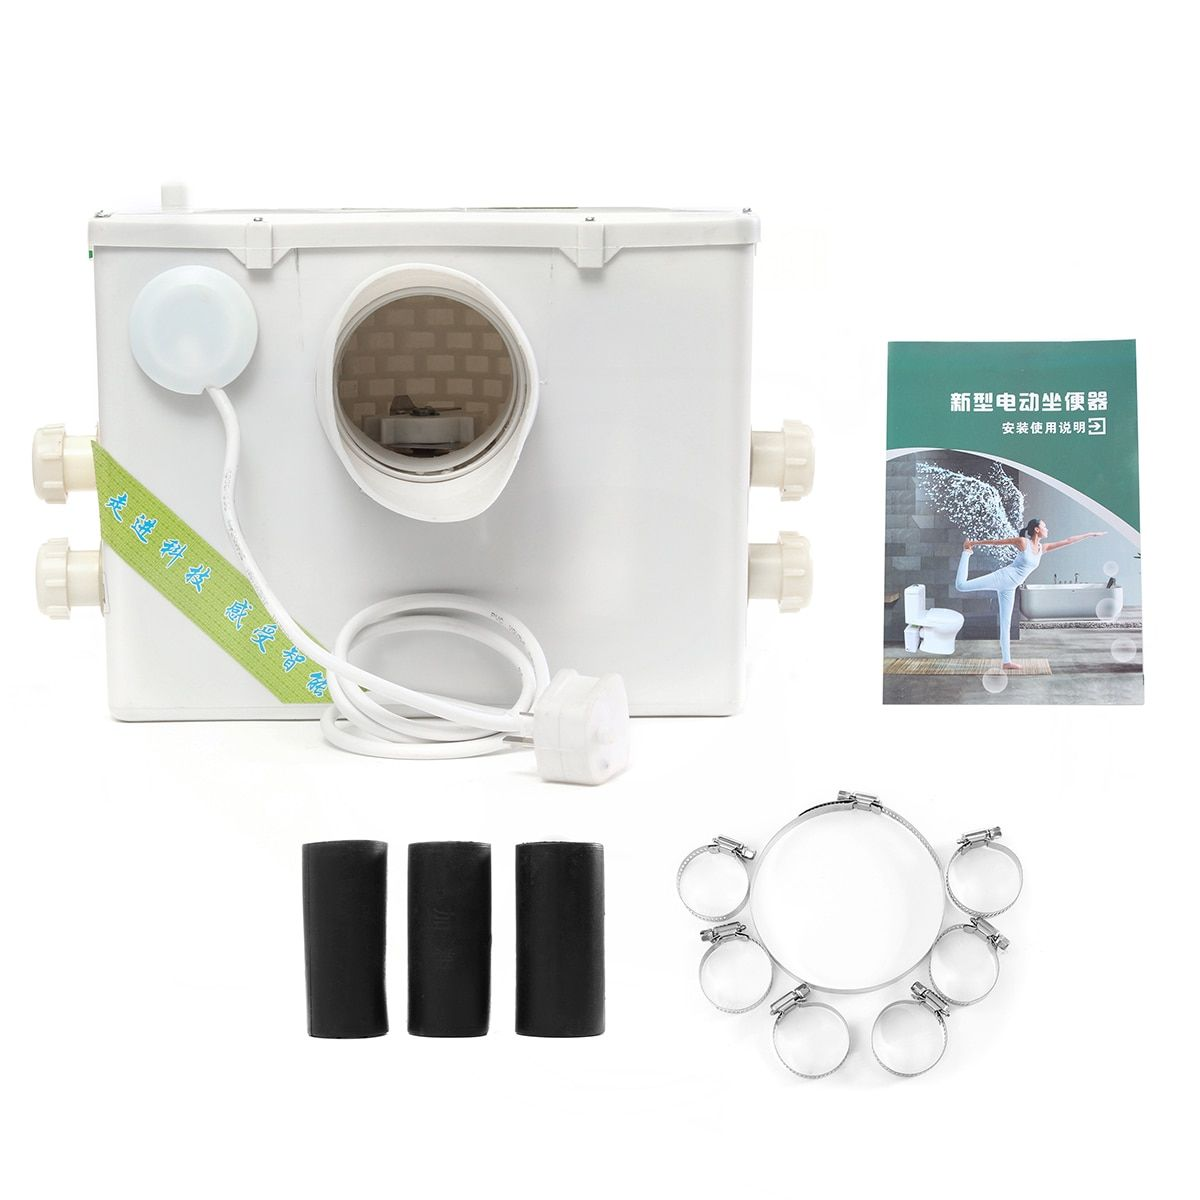 400W 2500L/h Multi-inlet Horizontal Macerator Disposal Pump Unit Toilet Sink Shower Fully Automatic for Bathroom